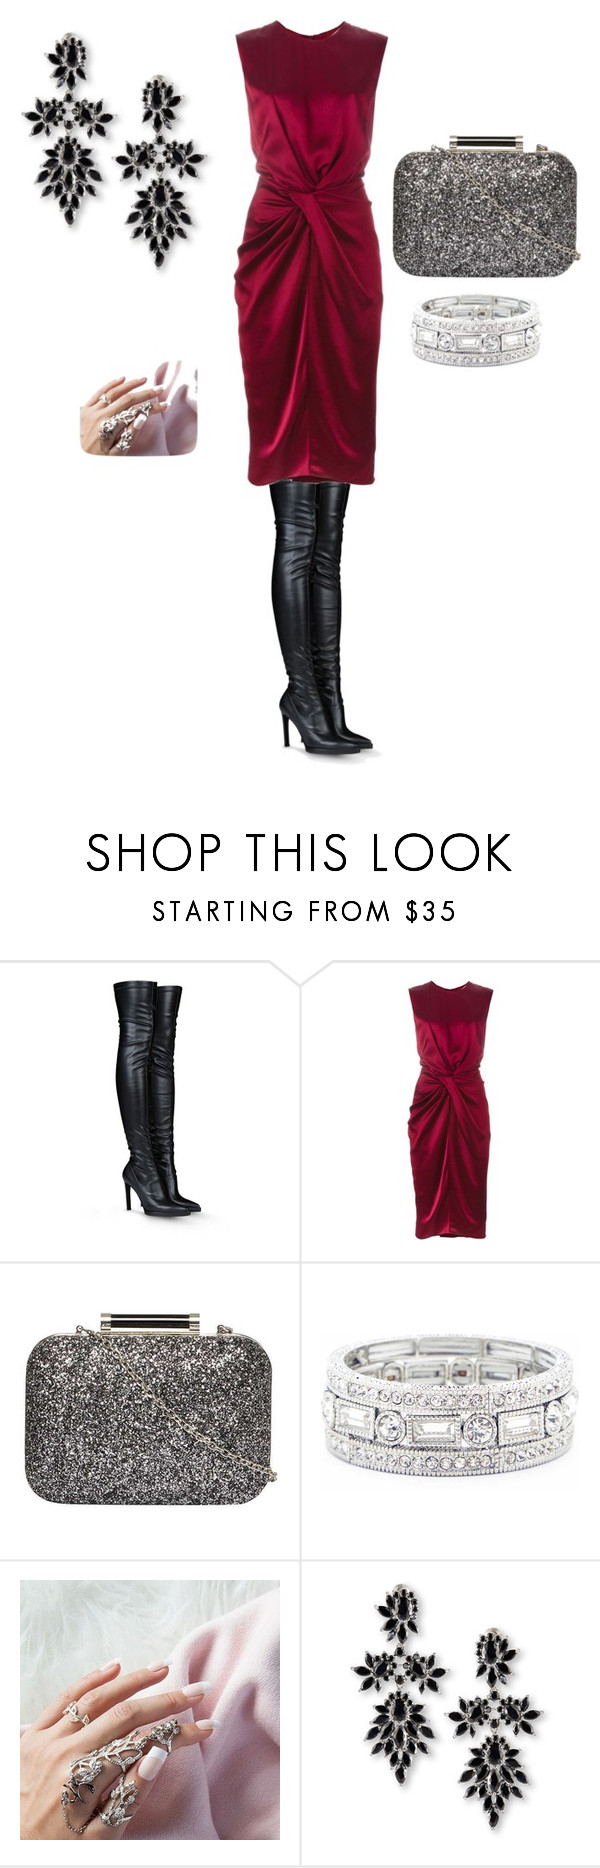 """""""christmas party"""" by maryemmanuel on Polyvore featuring STELLA McCARTNEY, Camilla and Marc, Dorothy Perkins, Sole Society and Fallon"""